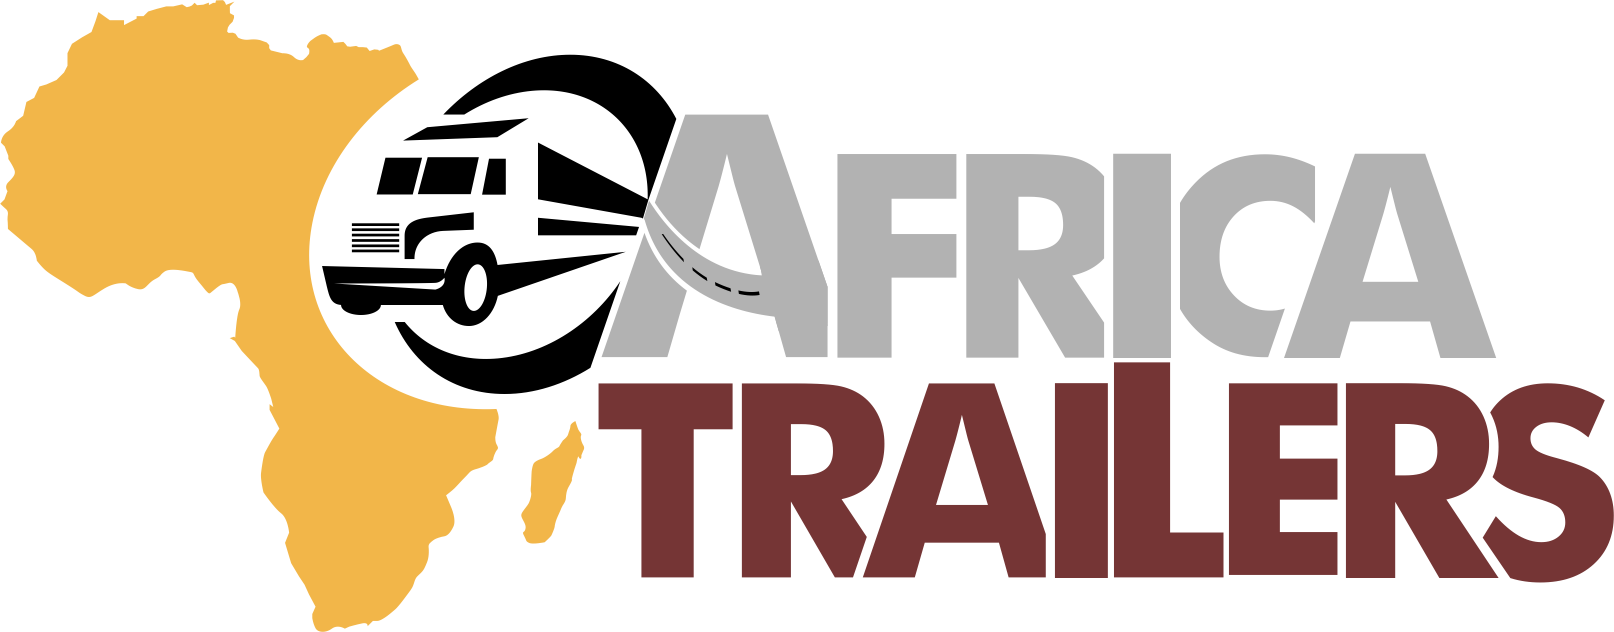 Africa Trailers